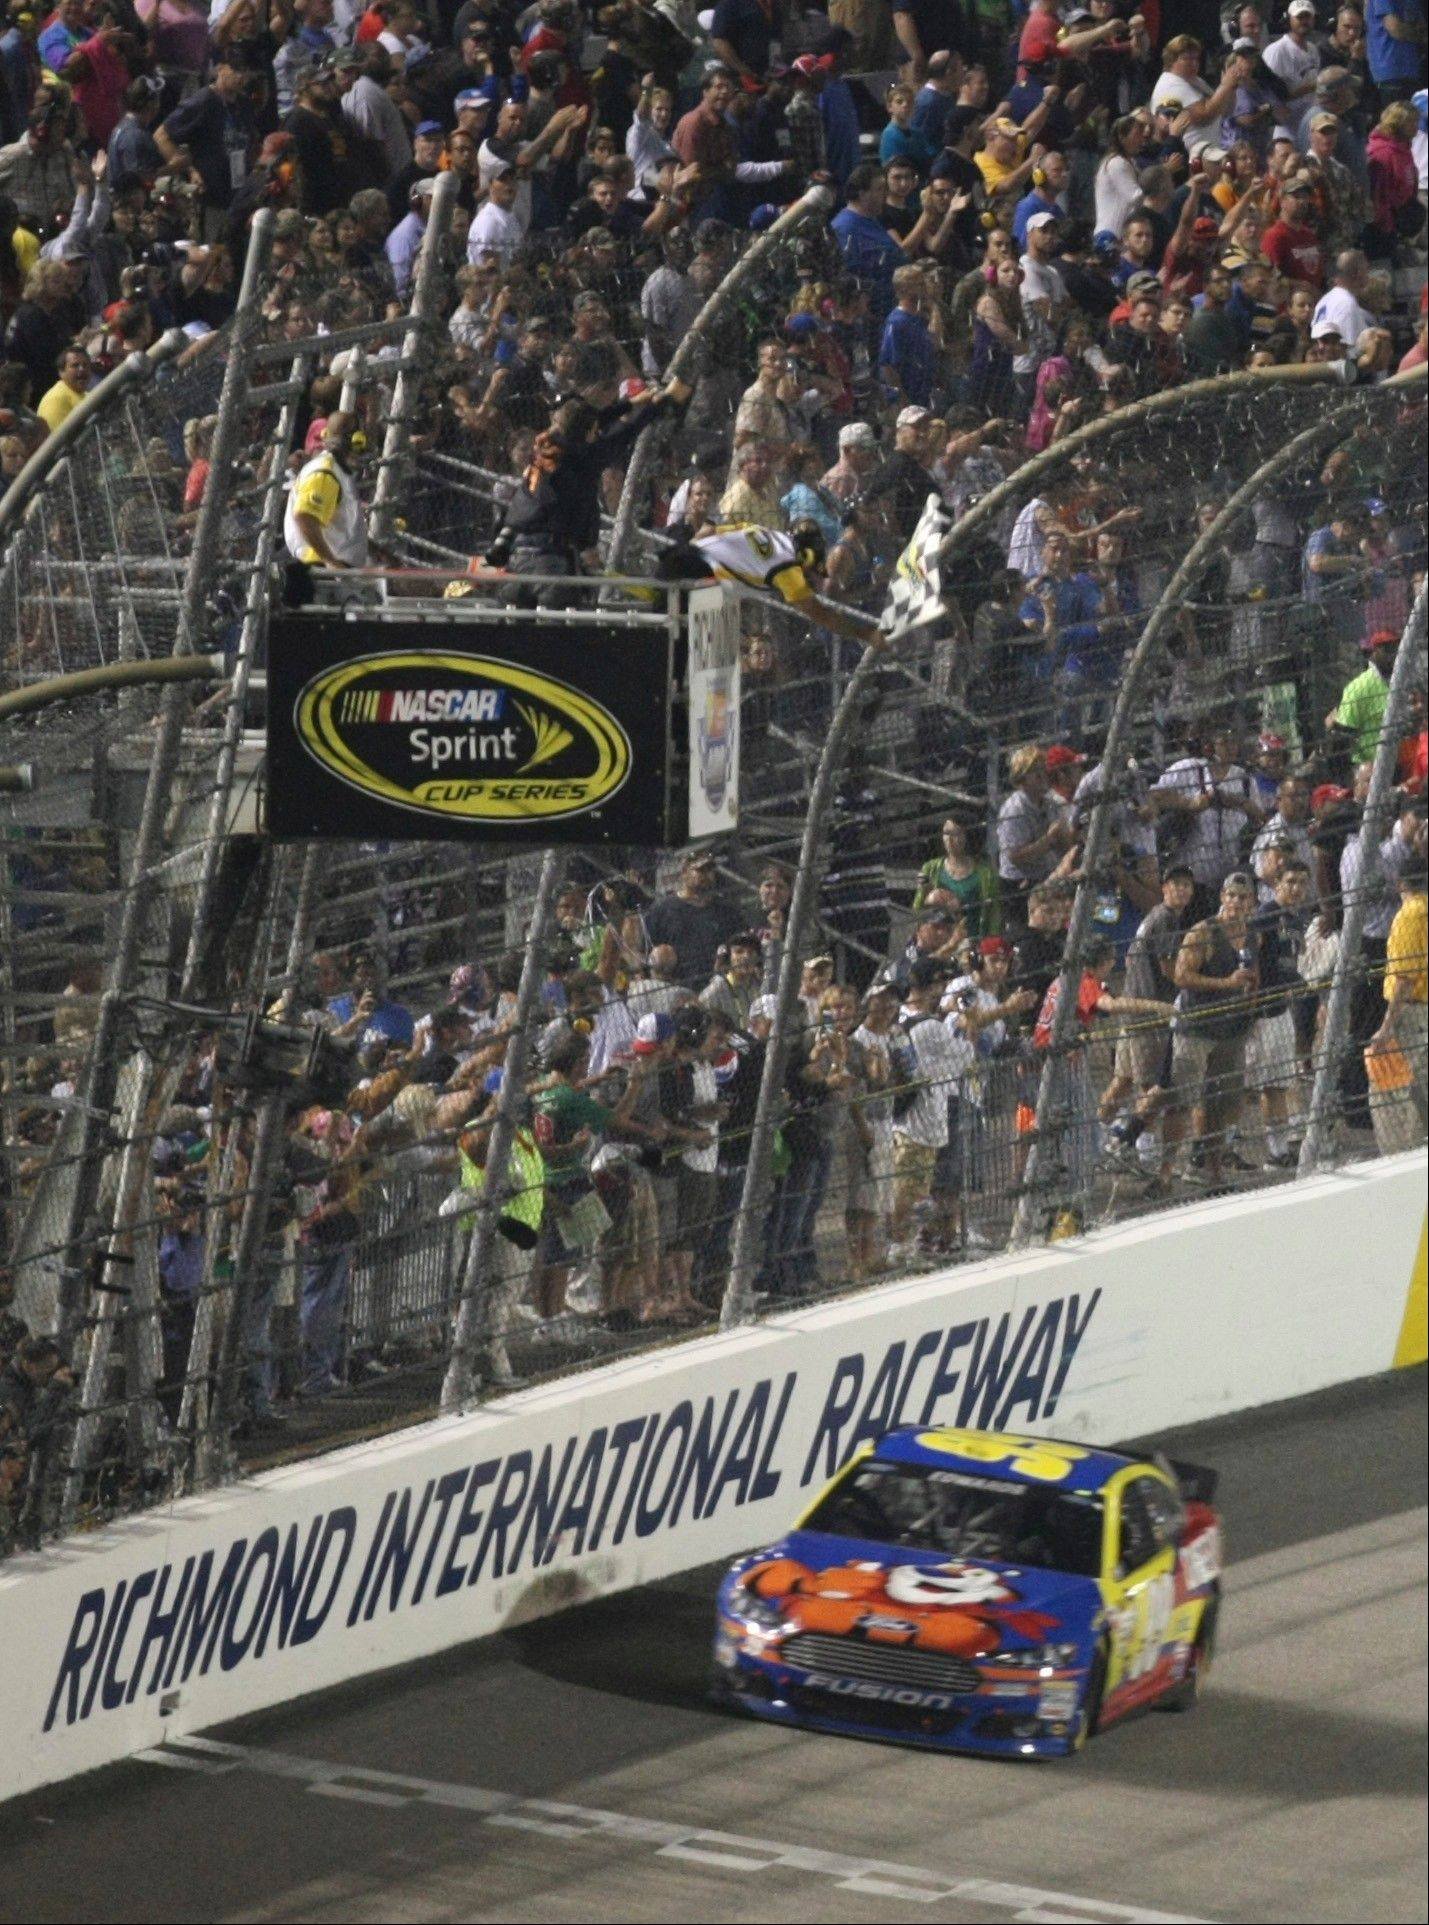 Carl Edwards approaches the finish line to win the NASCAR Sprint Cup Series race Saturday at Richmond International Raceway in Richmond, Va.